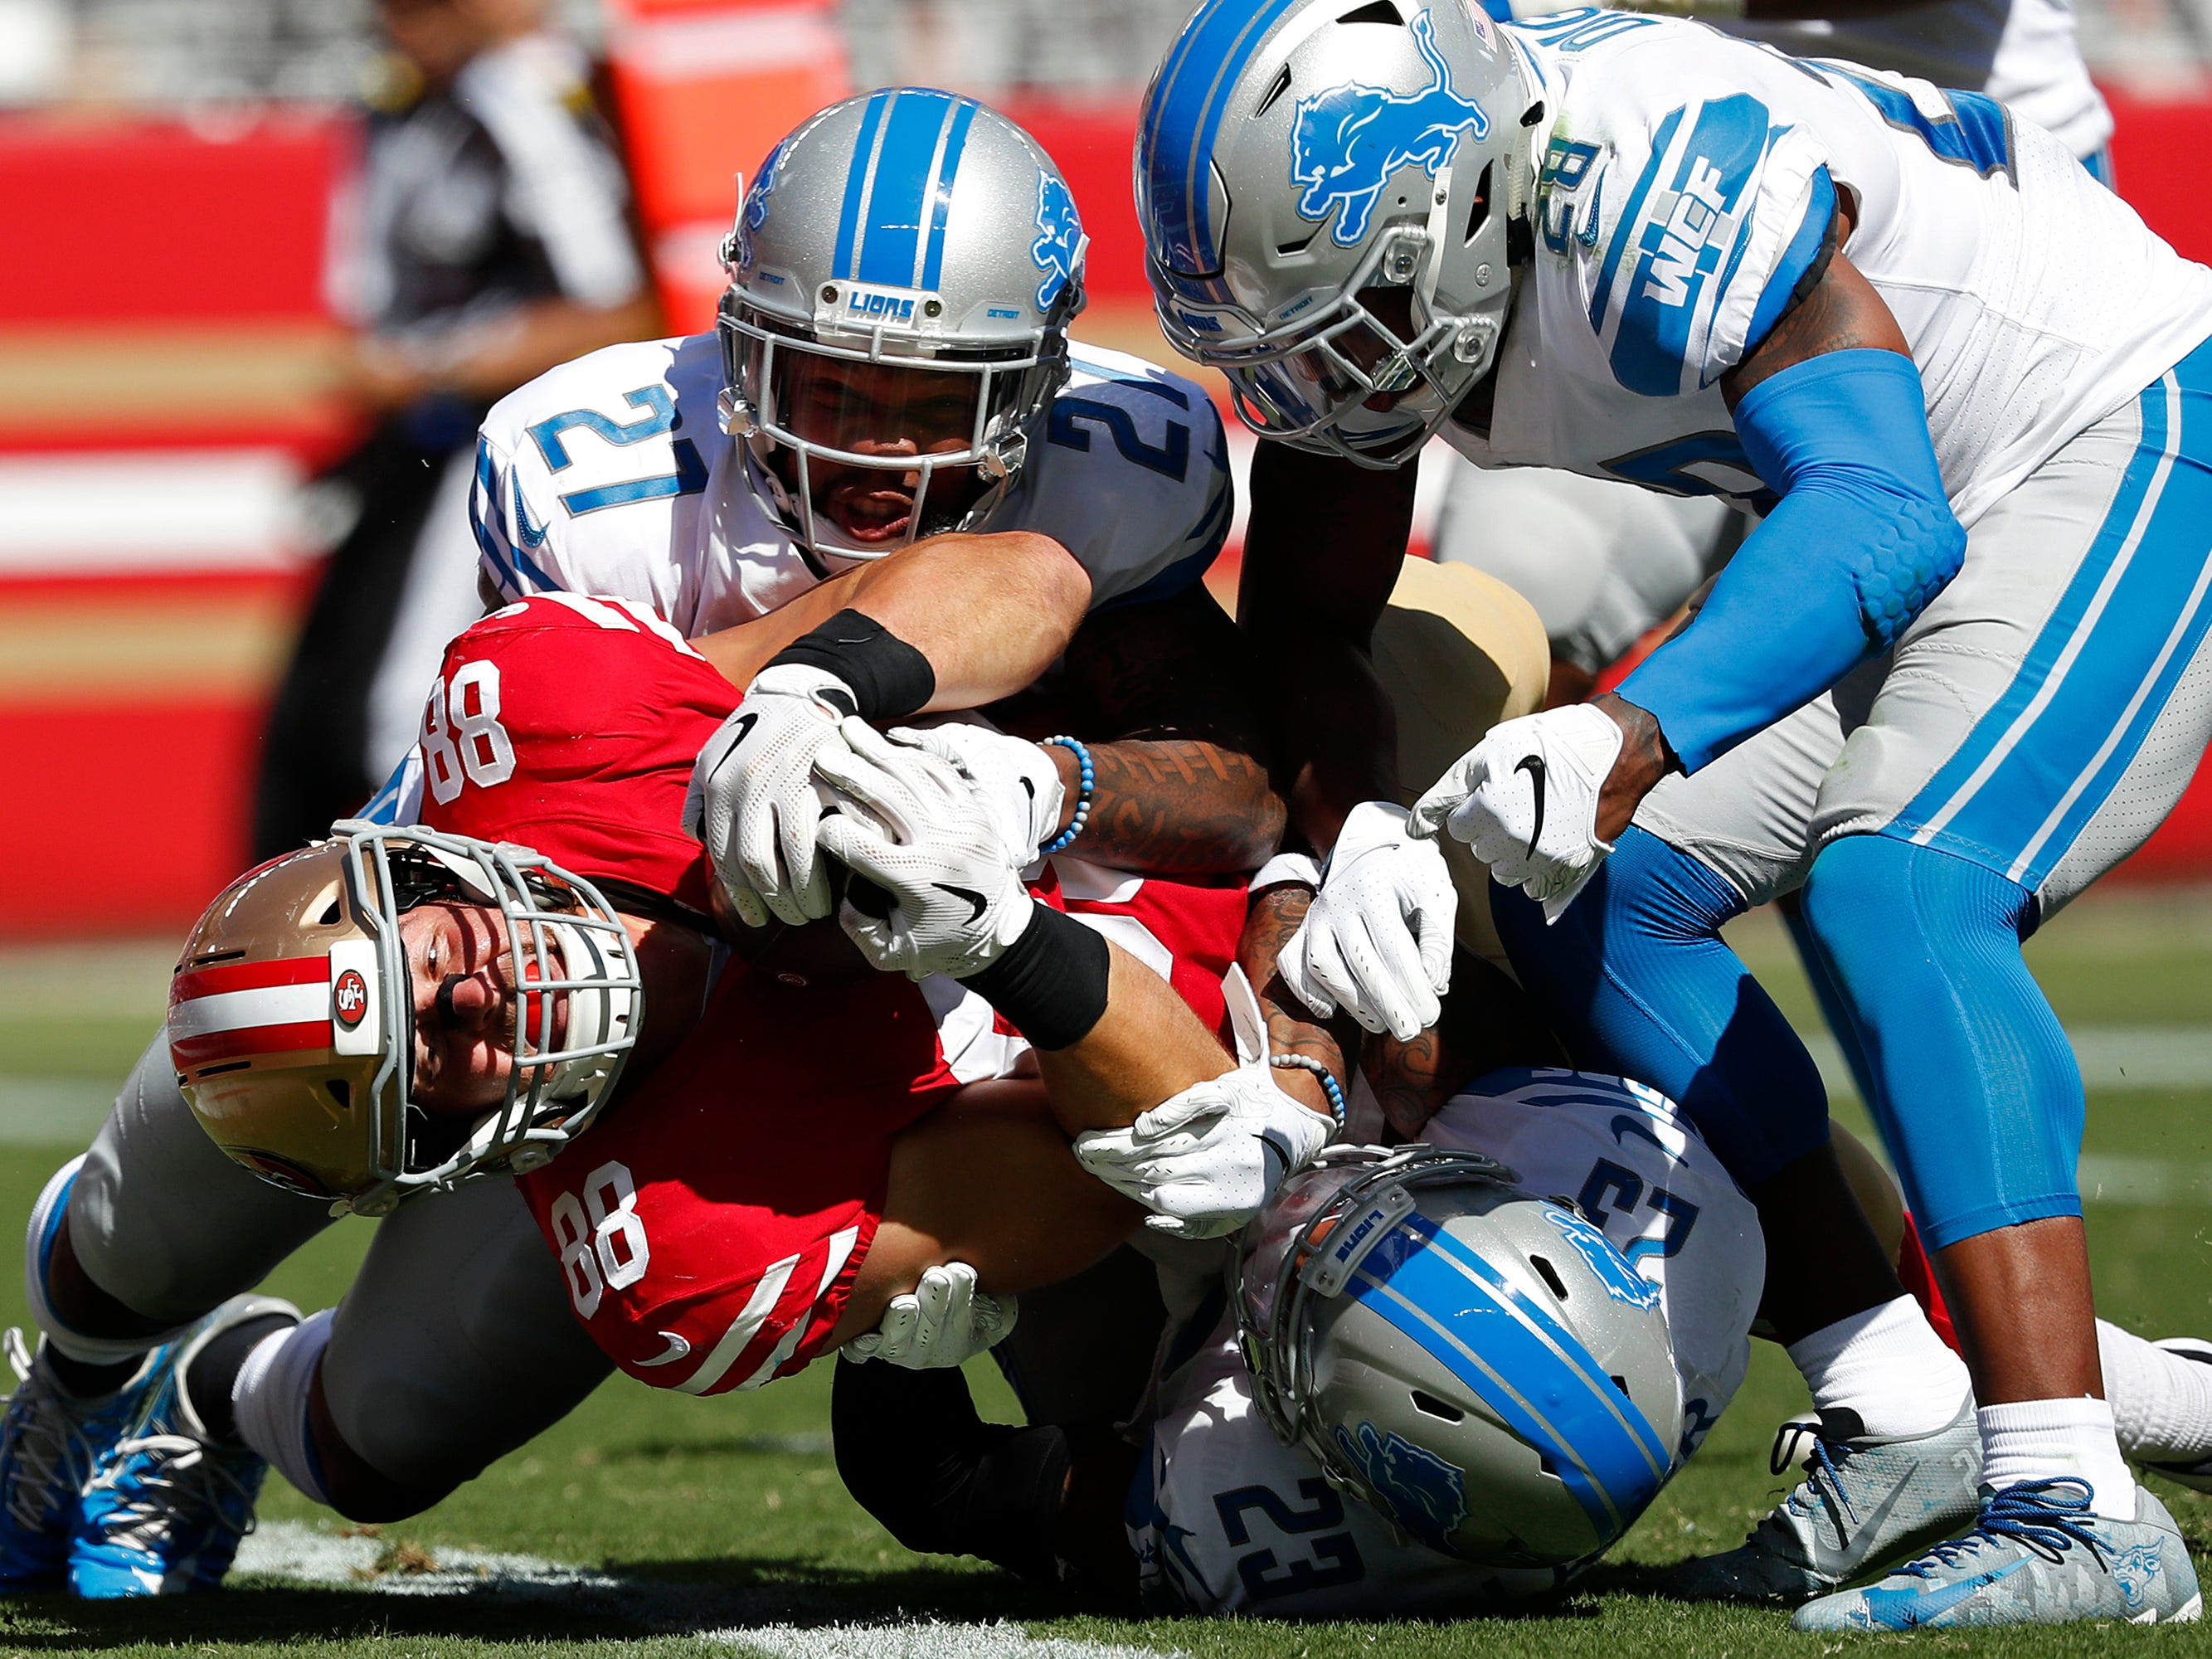 San Francisco 49ers tight end Garrett Celek (88) gets past Detroit Lions defensive back Glover Quin (27), cornerback Quandre Diggs (28) and defensive back Darius Slay (23) to score a touchdown during the second half.